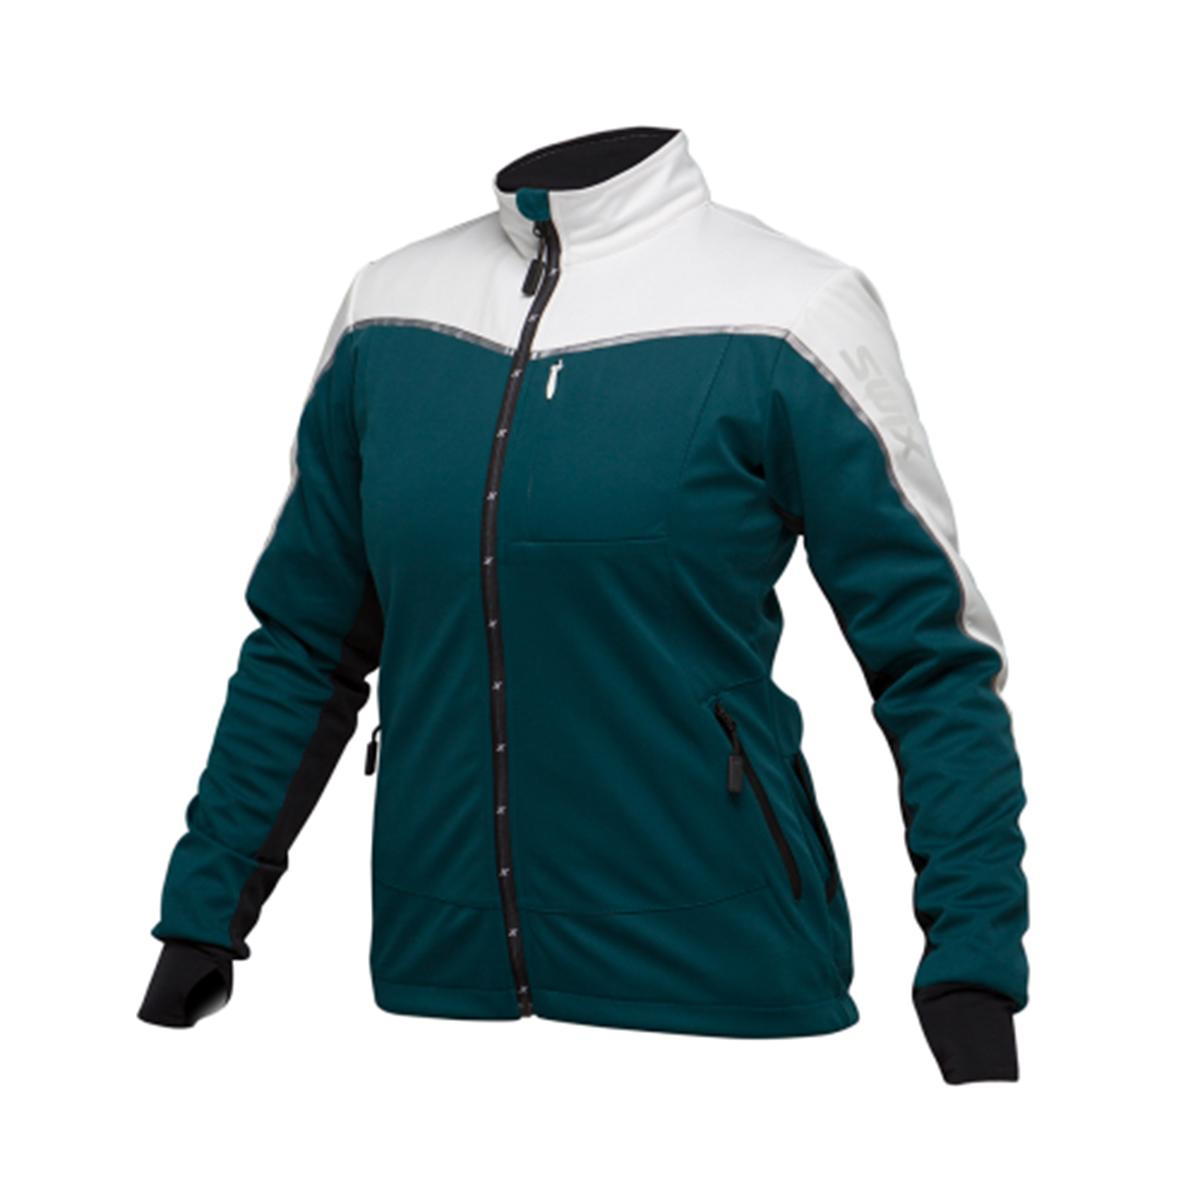 Swix Women's Delda Light Softshell Jacket in Spruce